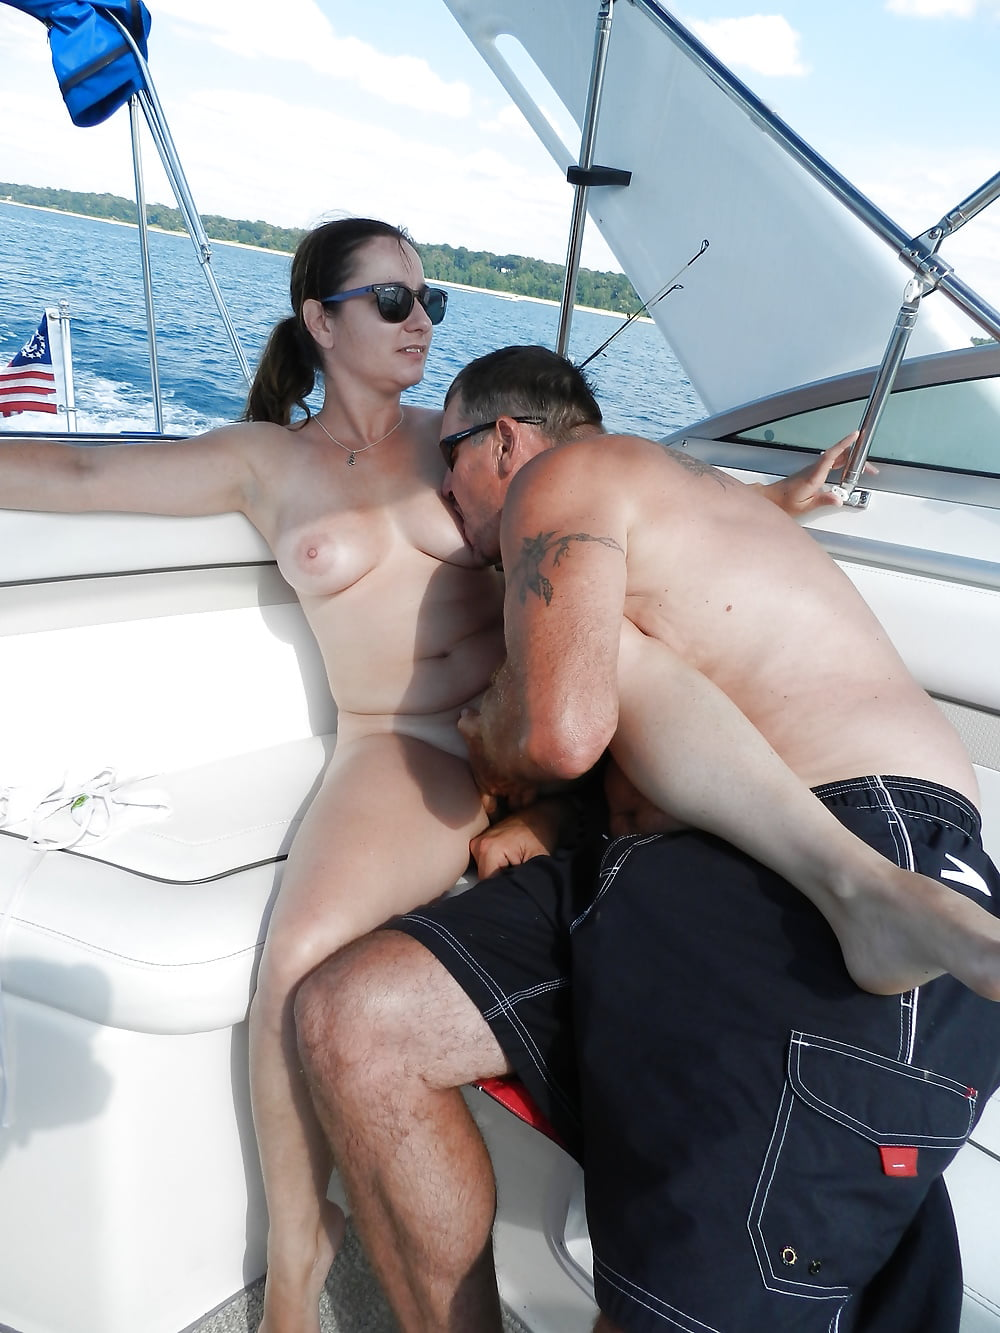 Yacht Anal Porn Pics, Yacht Sex Images